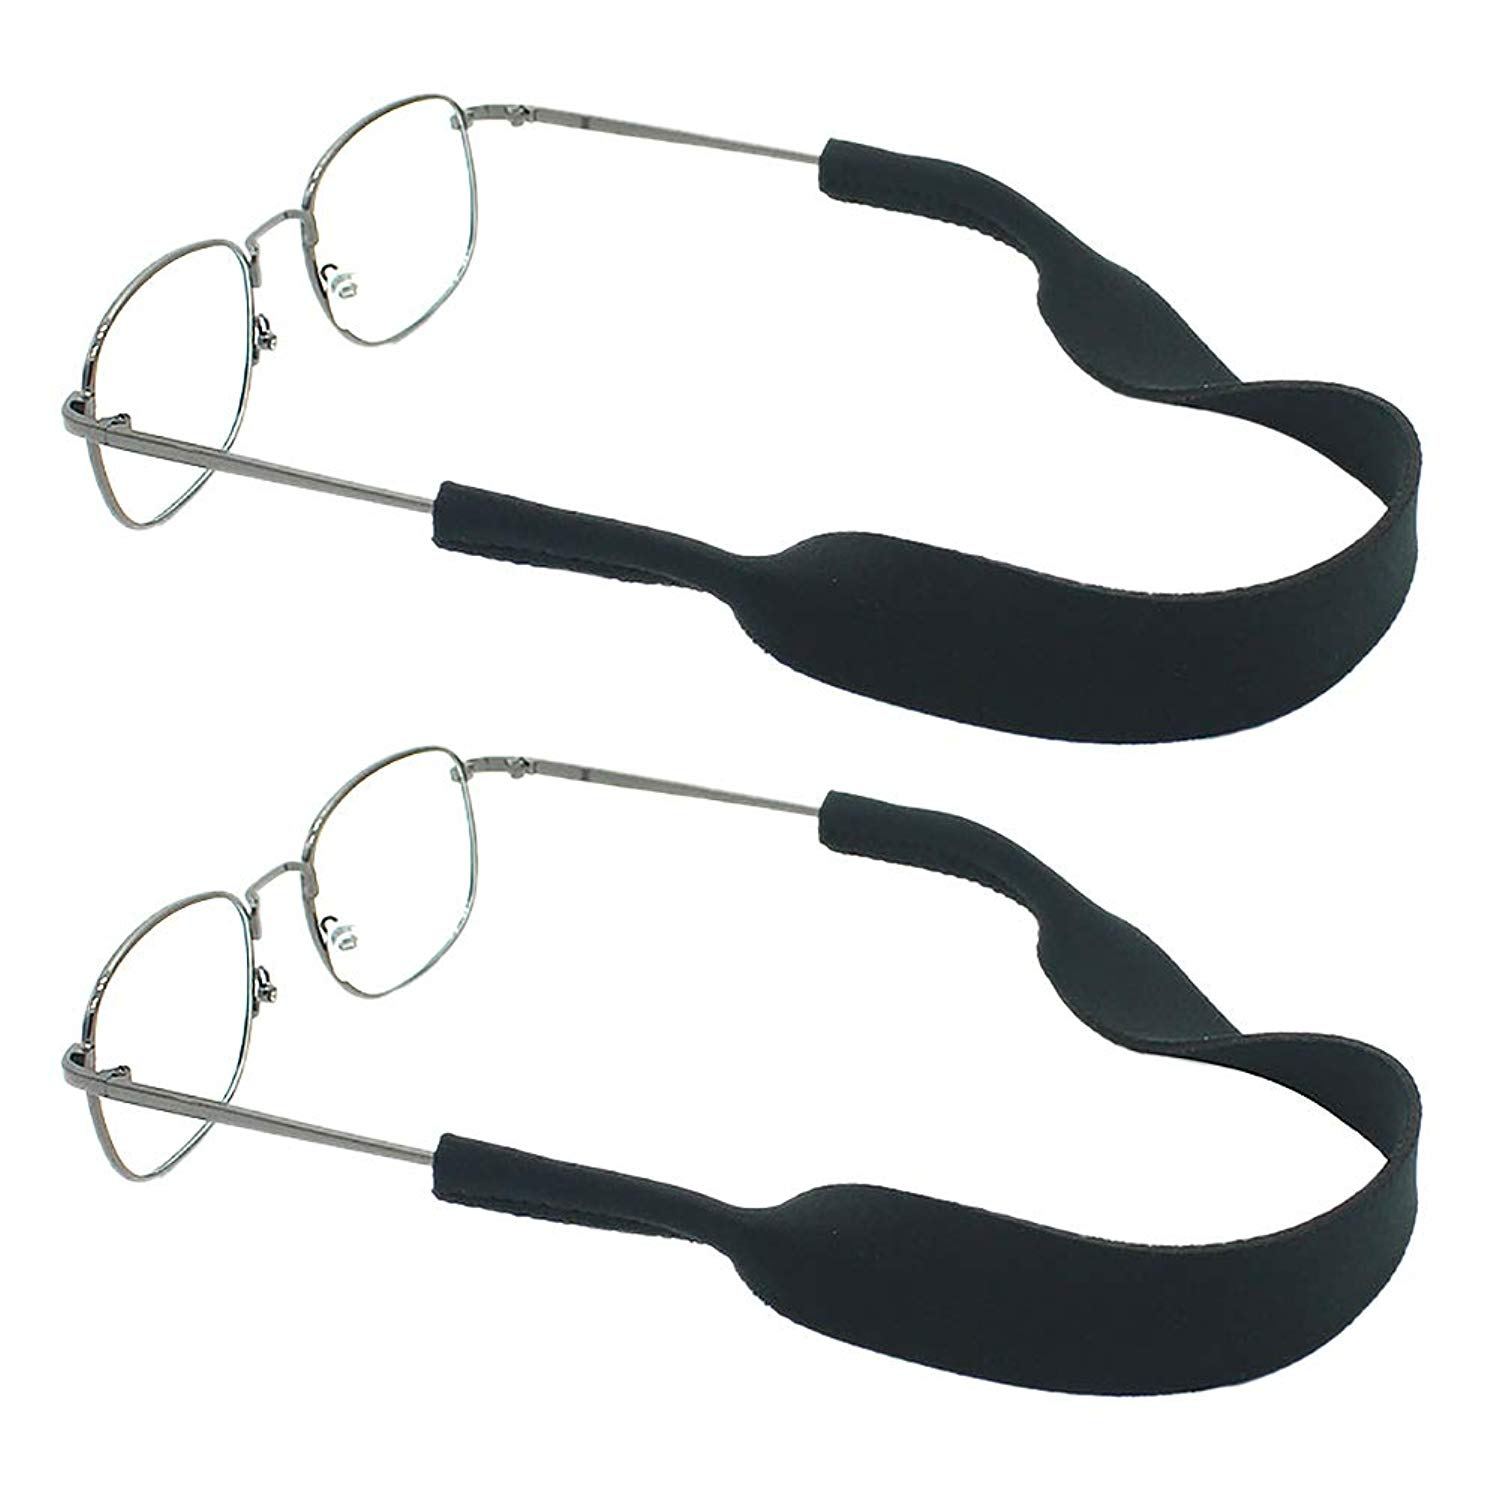 77dd9ae76ff Get Quotations · Darller 2 Pcs Sport Eyewear Retainer Adjustable Unisex  Sunglass and Glasses Holder Retainer Straps